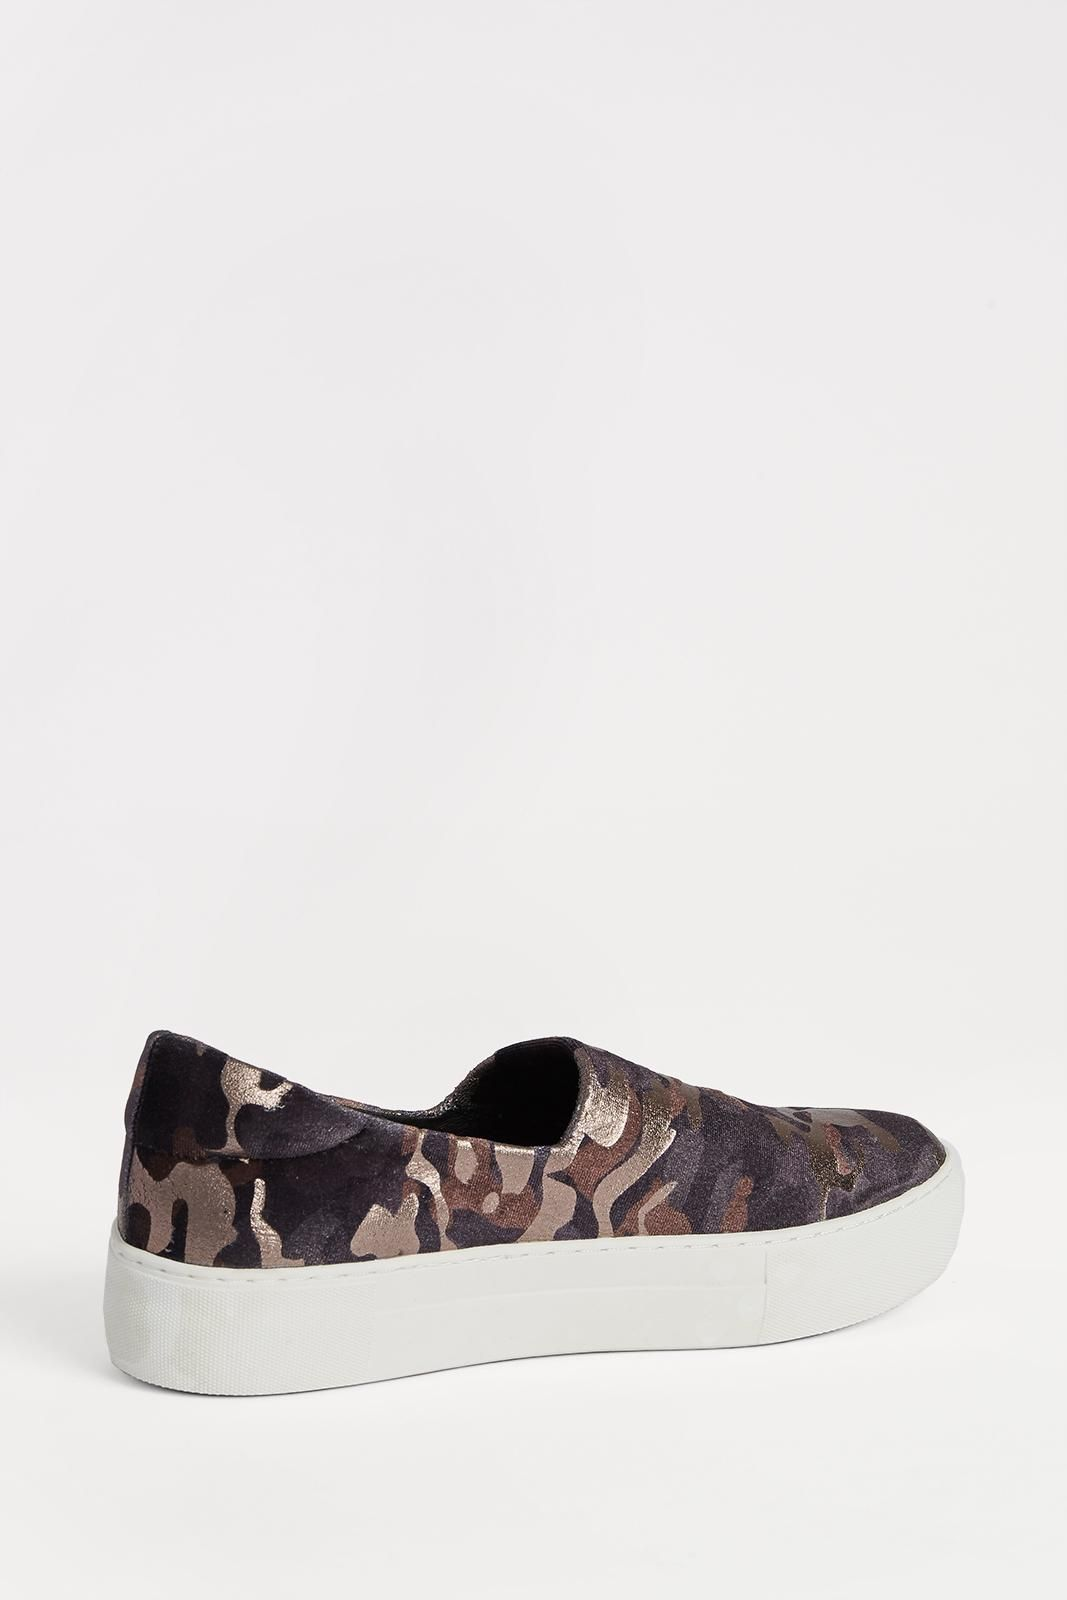 f5a665b1ac564 Ariana Camouflage Sneaker by J/SLIDES - EVEREVE $90 | Shoes | Shoes ...